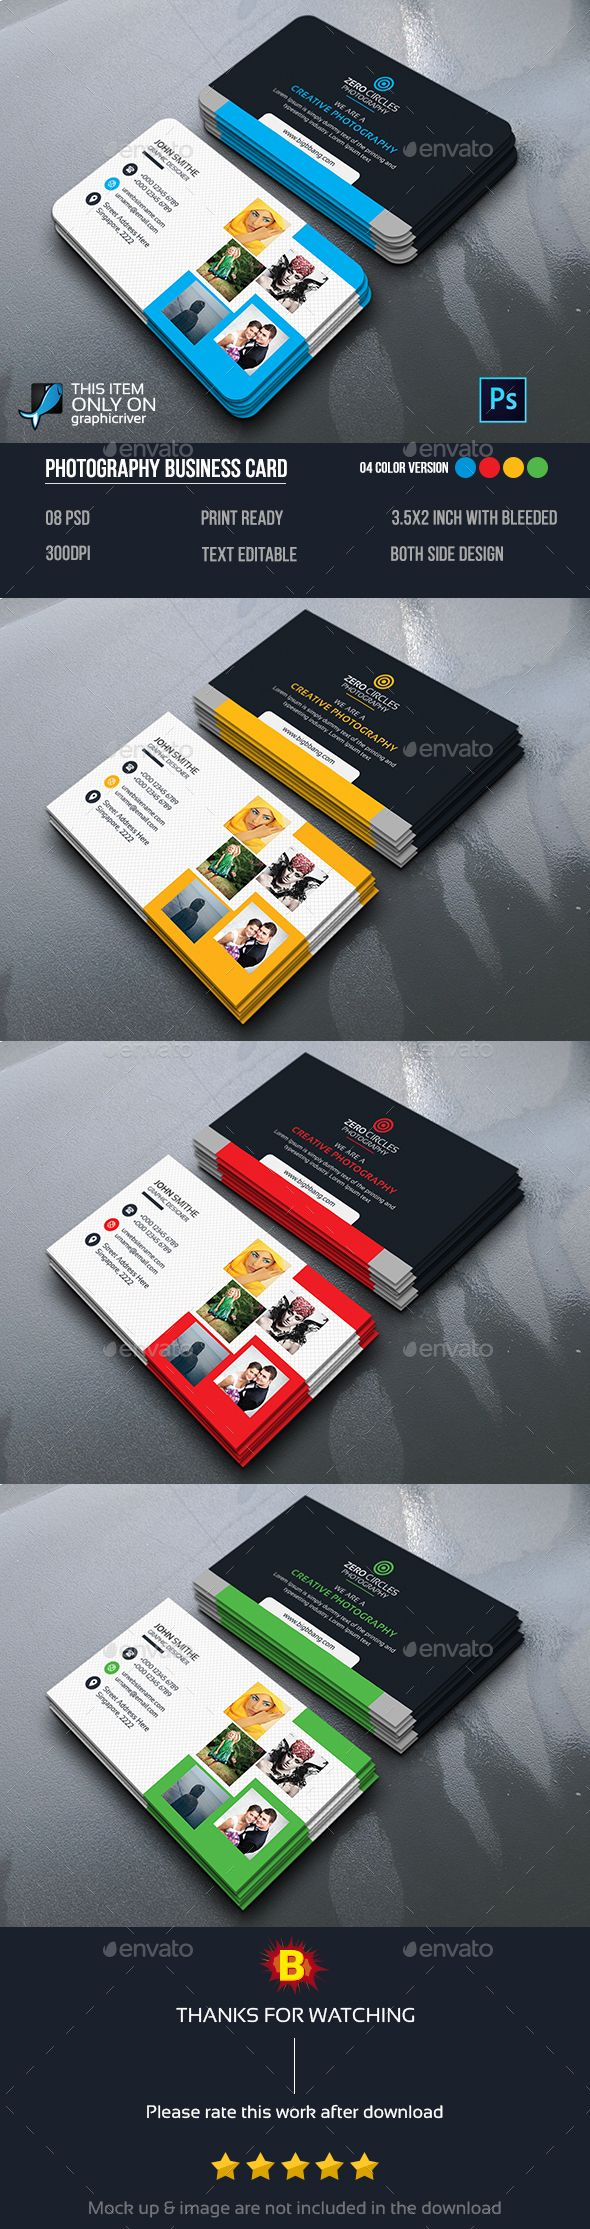 109 Best Business Cards Images On Pinterest Business Card Design